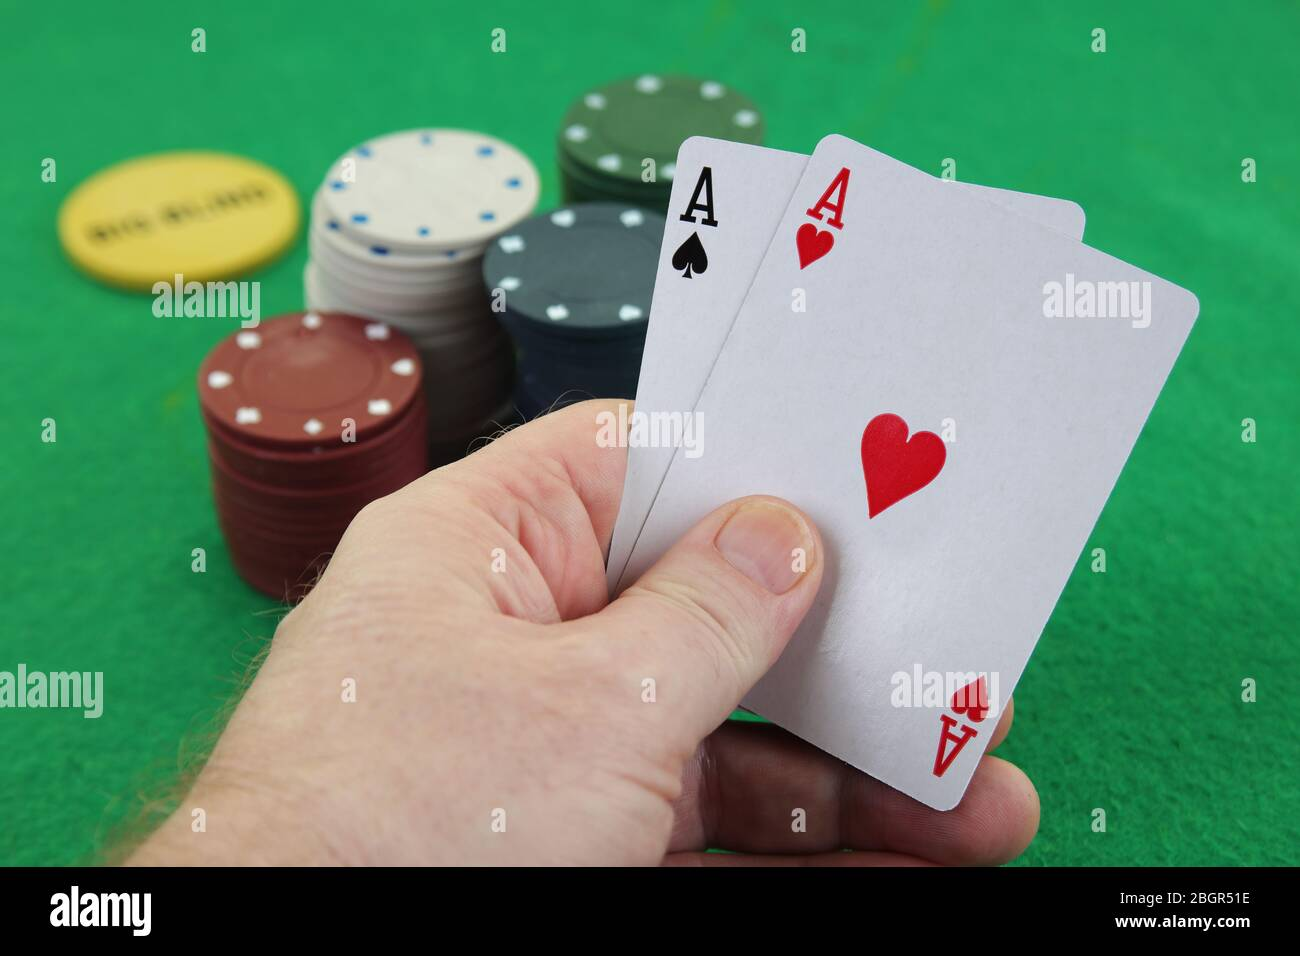 Texas Holdem Poker High Resolution Stock Photography And Images Alamy